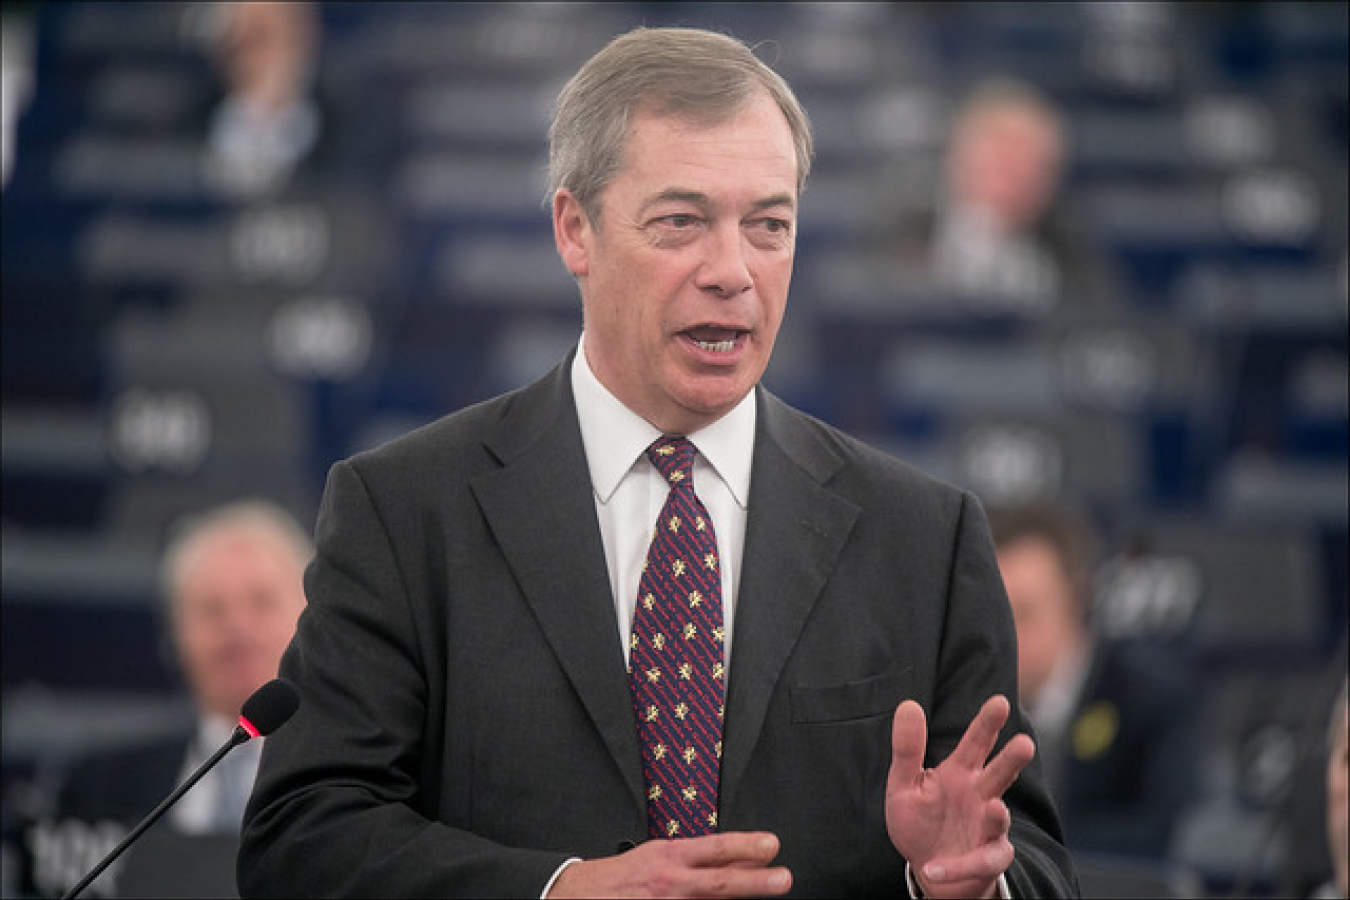 NIgel Farage of Brexit Party